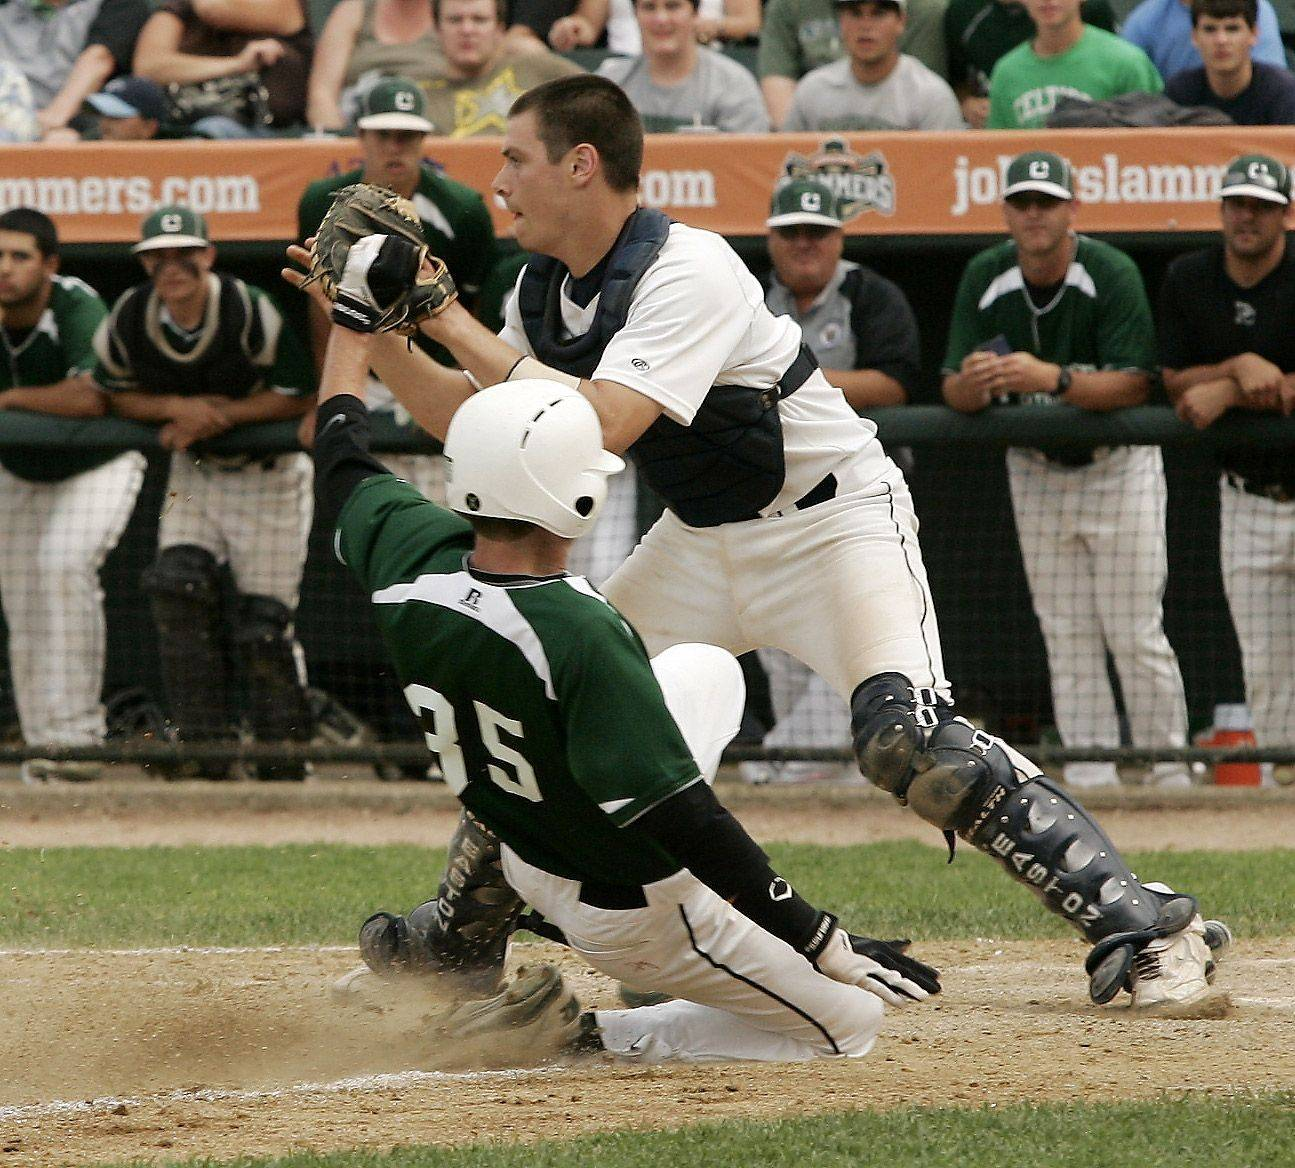 Providence runner Brady Wilkin slides safely under the tag of Prospect catcher Kurt Donner in the third inning at Silver Cross Field in Joliet.